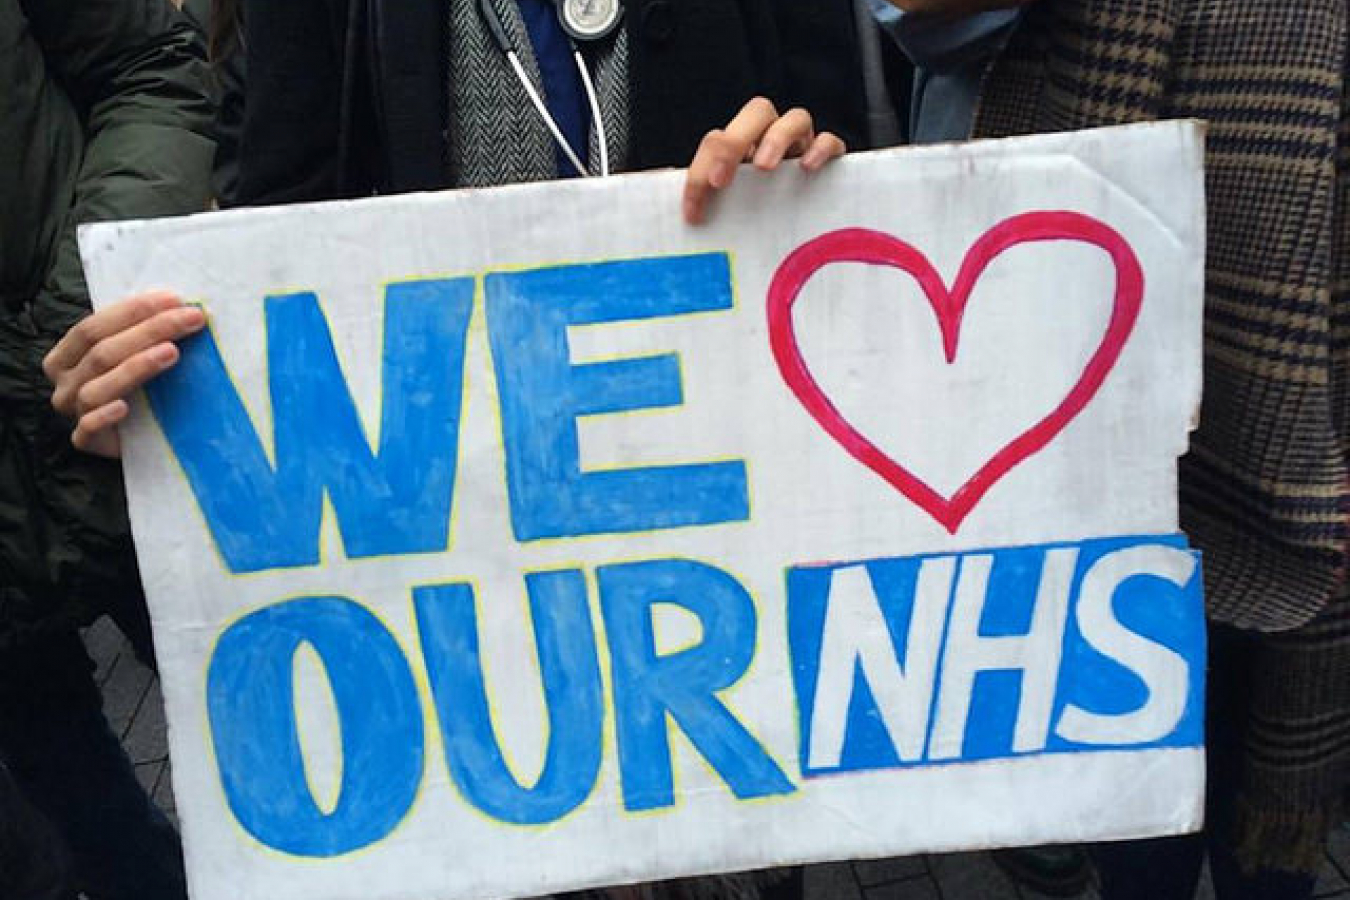 We Lover our NHS Junior Doctors Protest